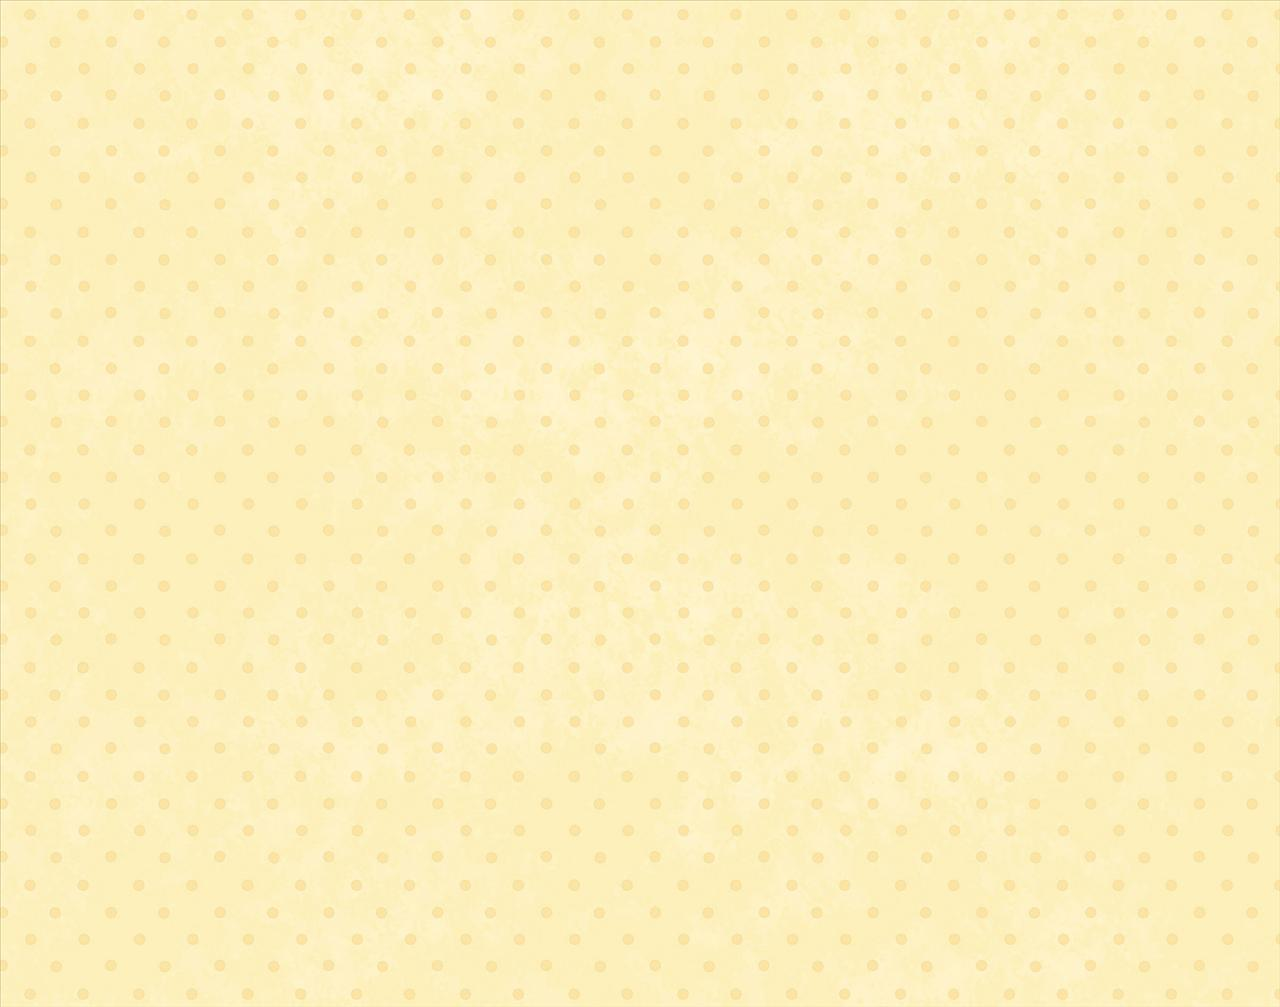 Yellow Dots pattern Backgrounds